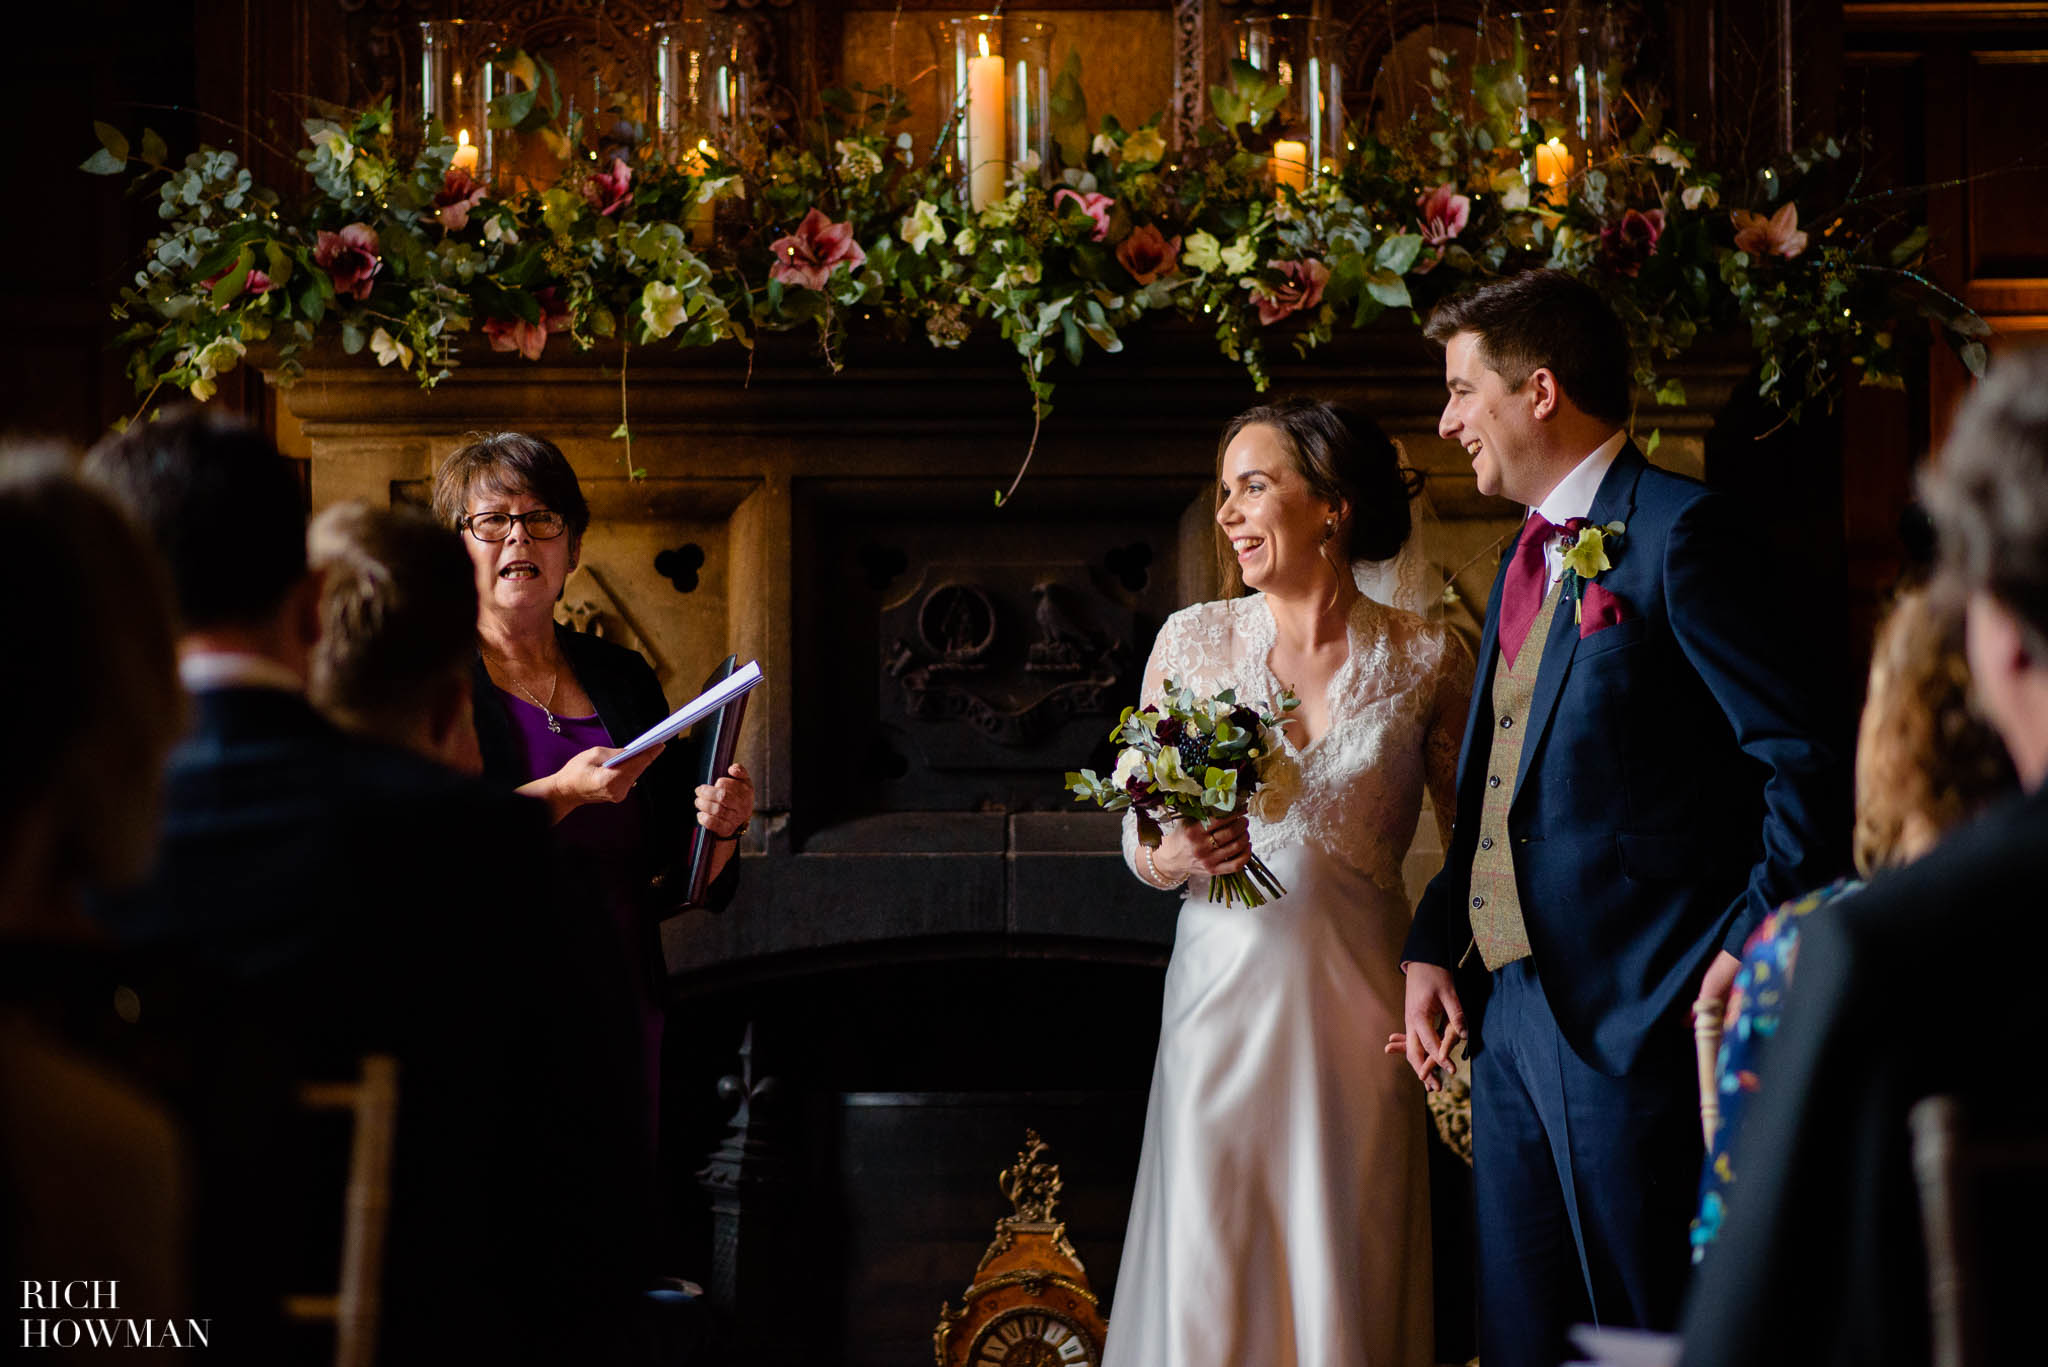 Registrar reads the vows during a wedding photo story at Huntsham Court in Devon